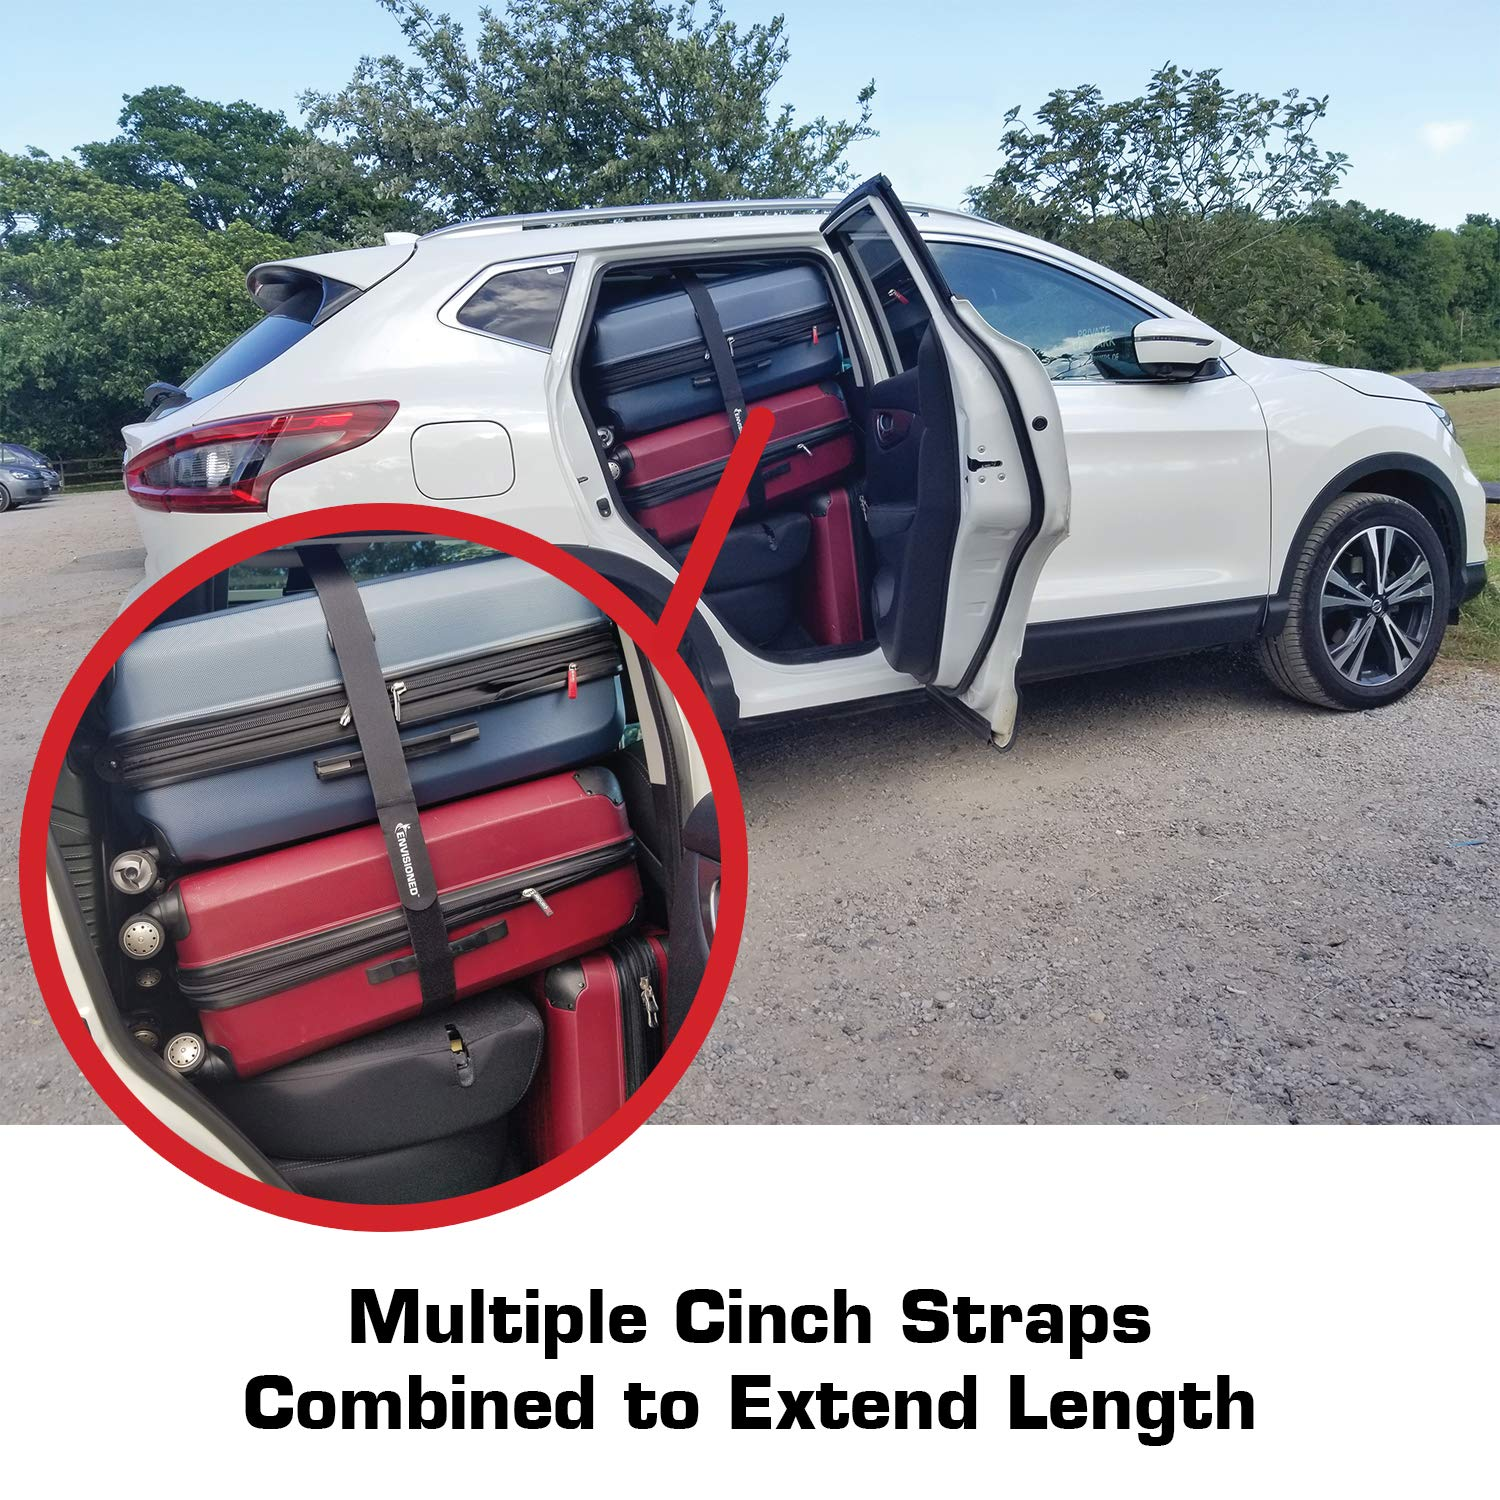 Premium Cinch Straps with Stainless Steel Metal Ring 2 x 60 Multipurpose Securing Straps 4 Pack Multipurpose Securing Straps 4 Pack Buckle 2 x 60 Envisioned Products Inc. Reusable Durable Hook and Loop